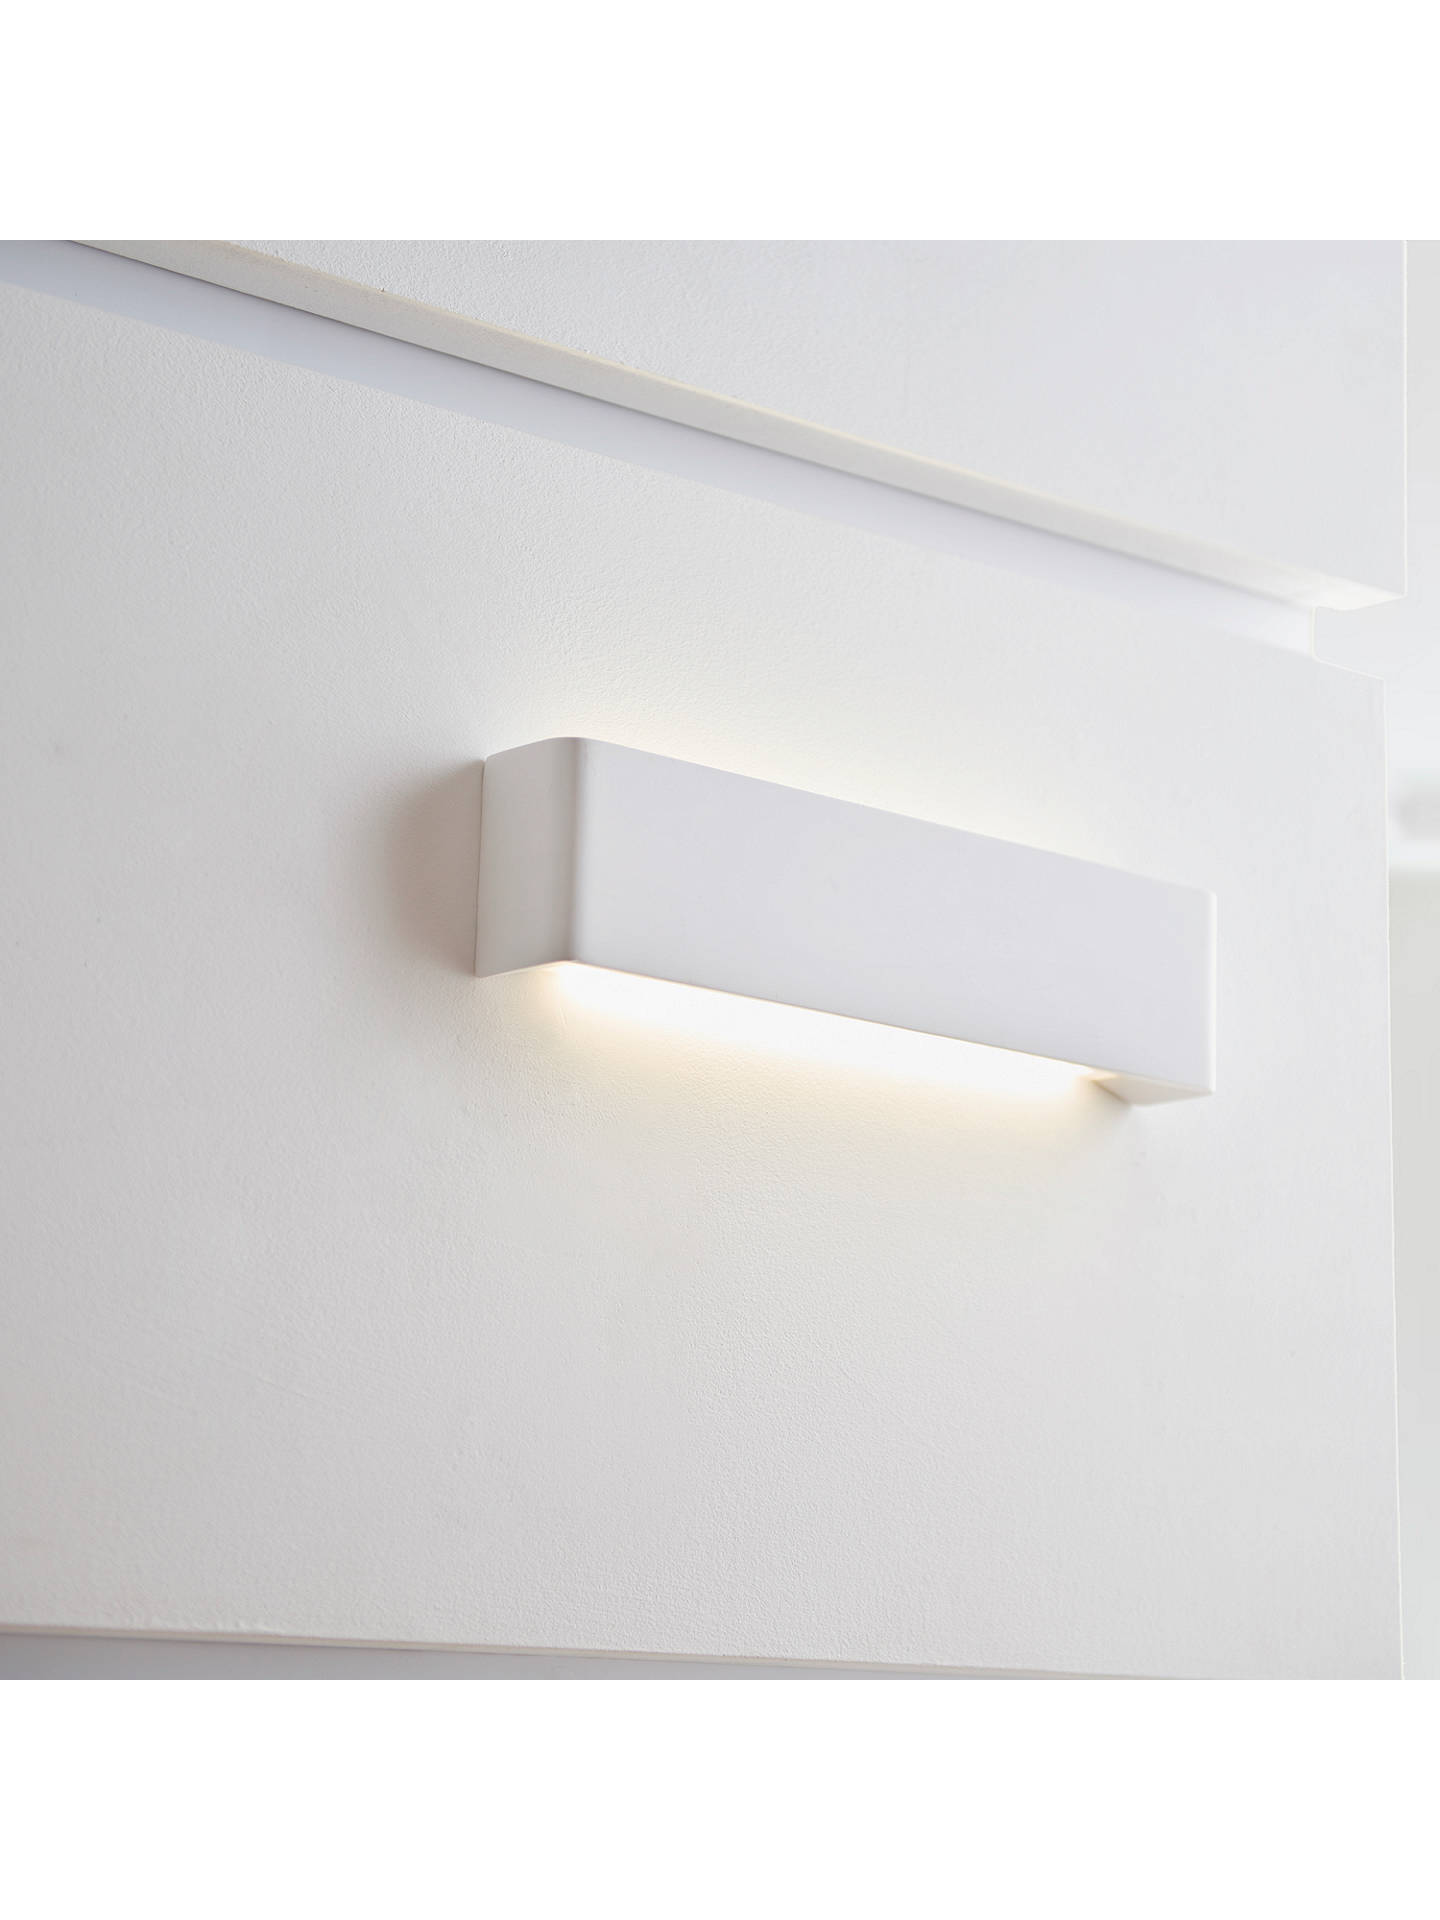 John lewis partners lines led wash wall light at john lewis partners buyjohn lewis partners lines led wash wall light online at johnlewis aloadofball Images